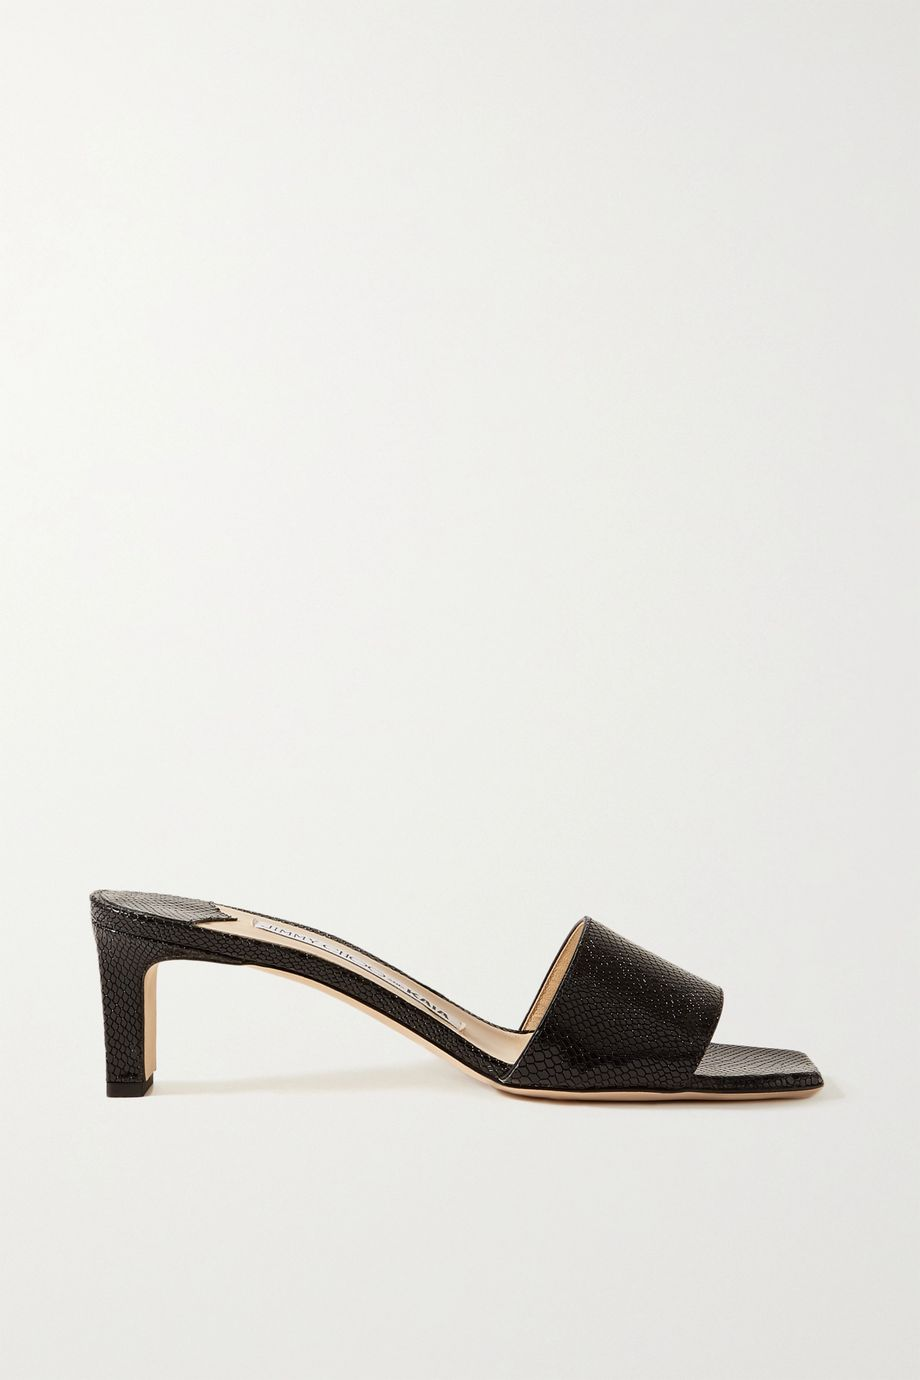 Jimmy Choo + Kaia Gerber 45 lizard-effect leather mules